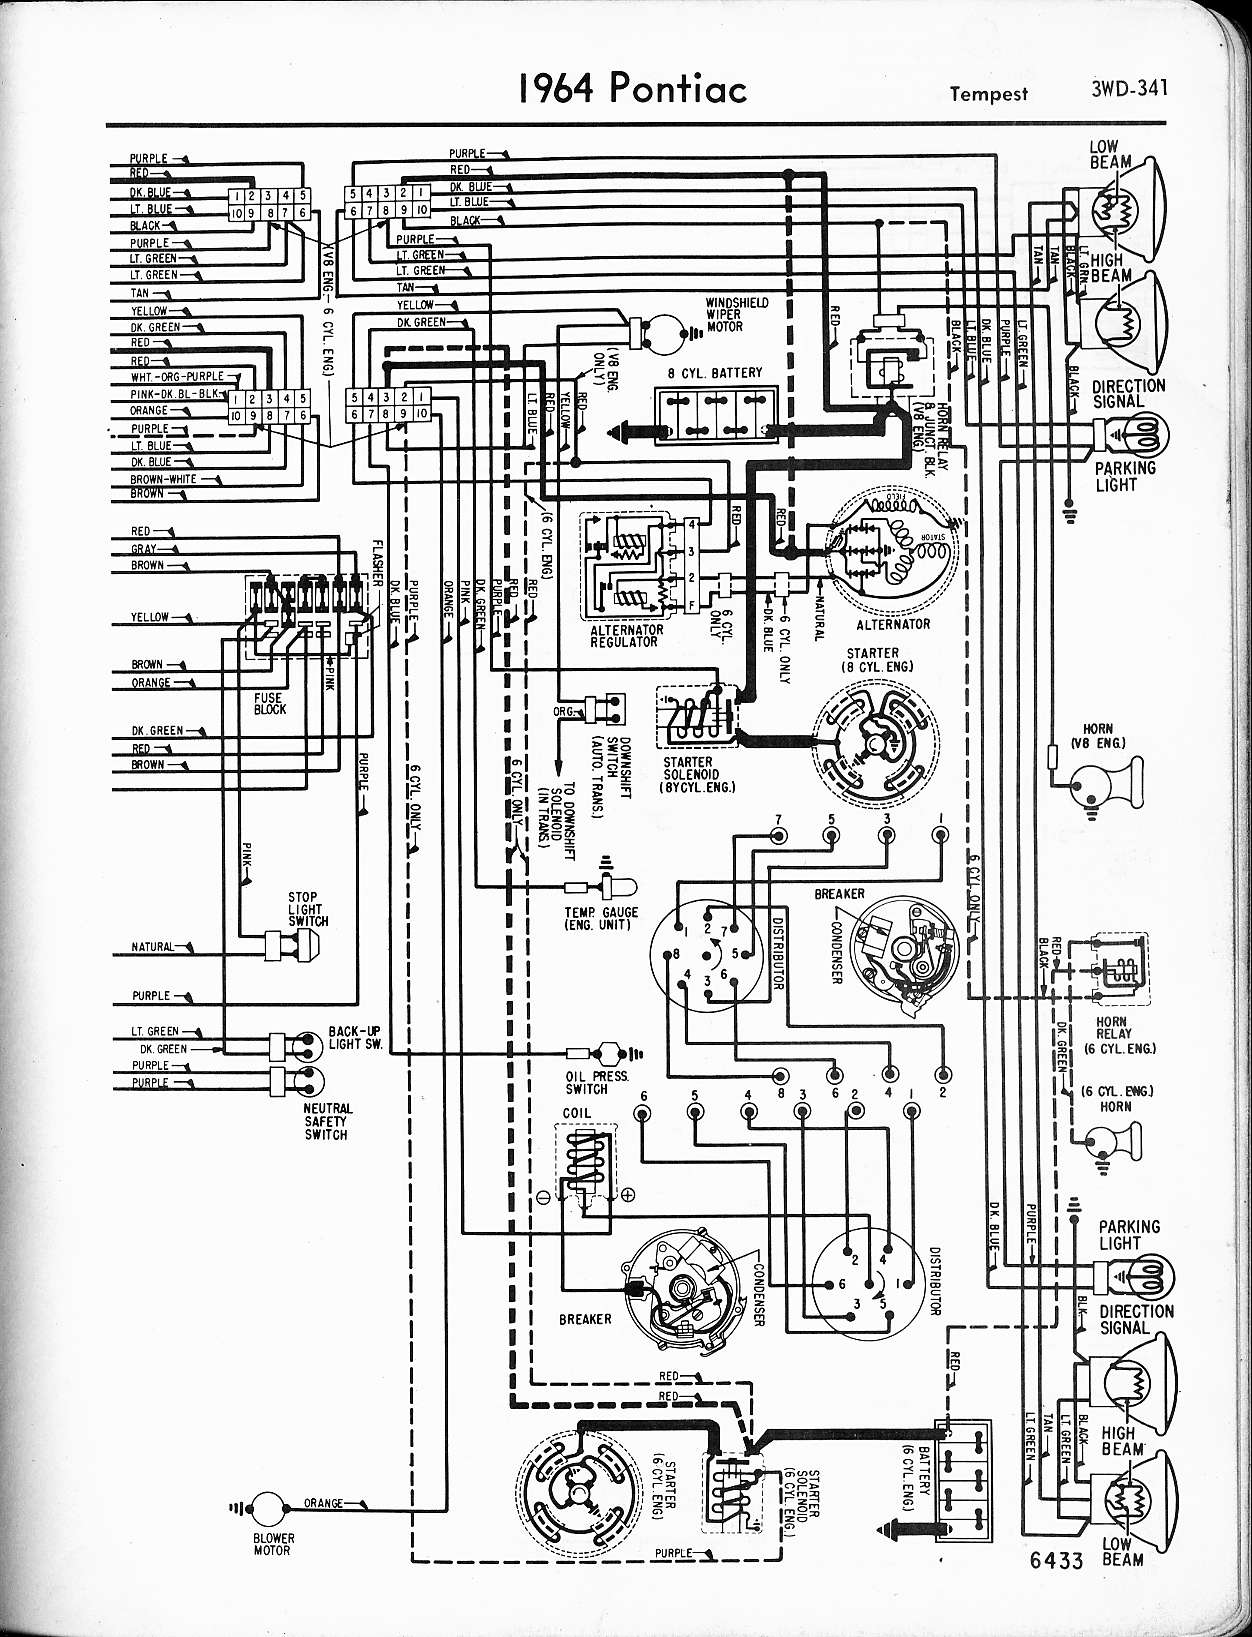 1966 pontiac catalina wiring diagram pontiac wiring diagrams 1967 pontiac catalina wiring diagram 1965 gto heater wiring diagram